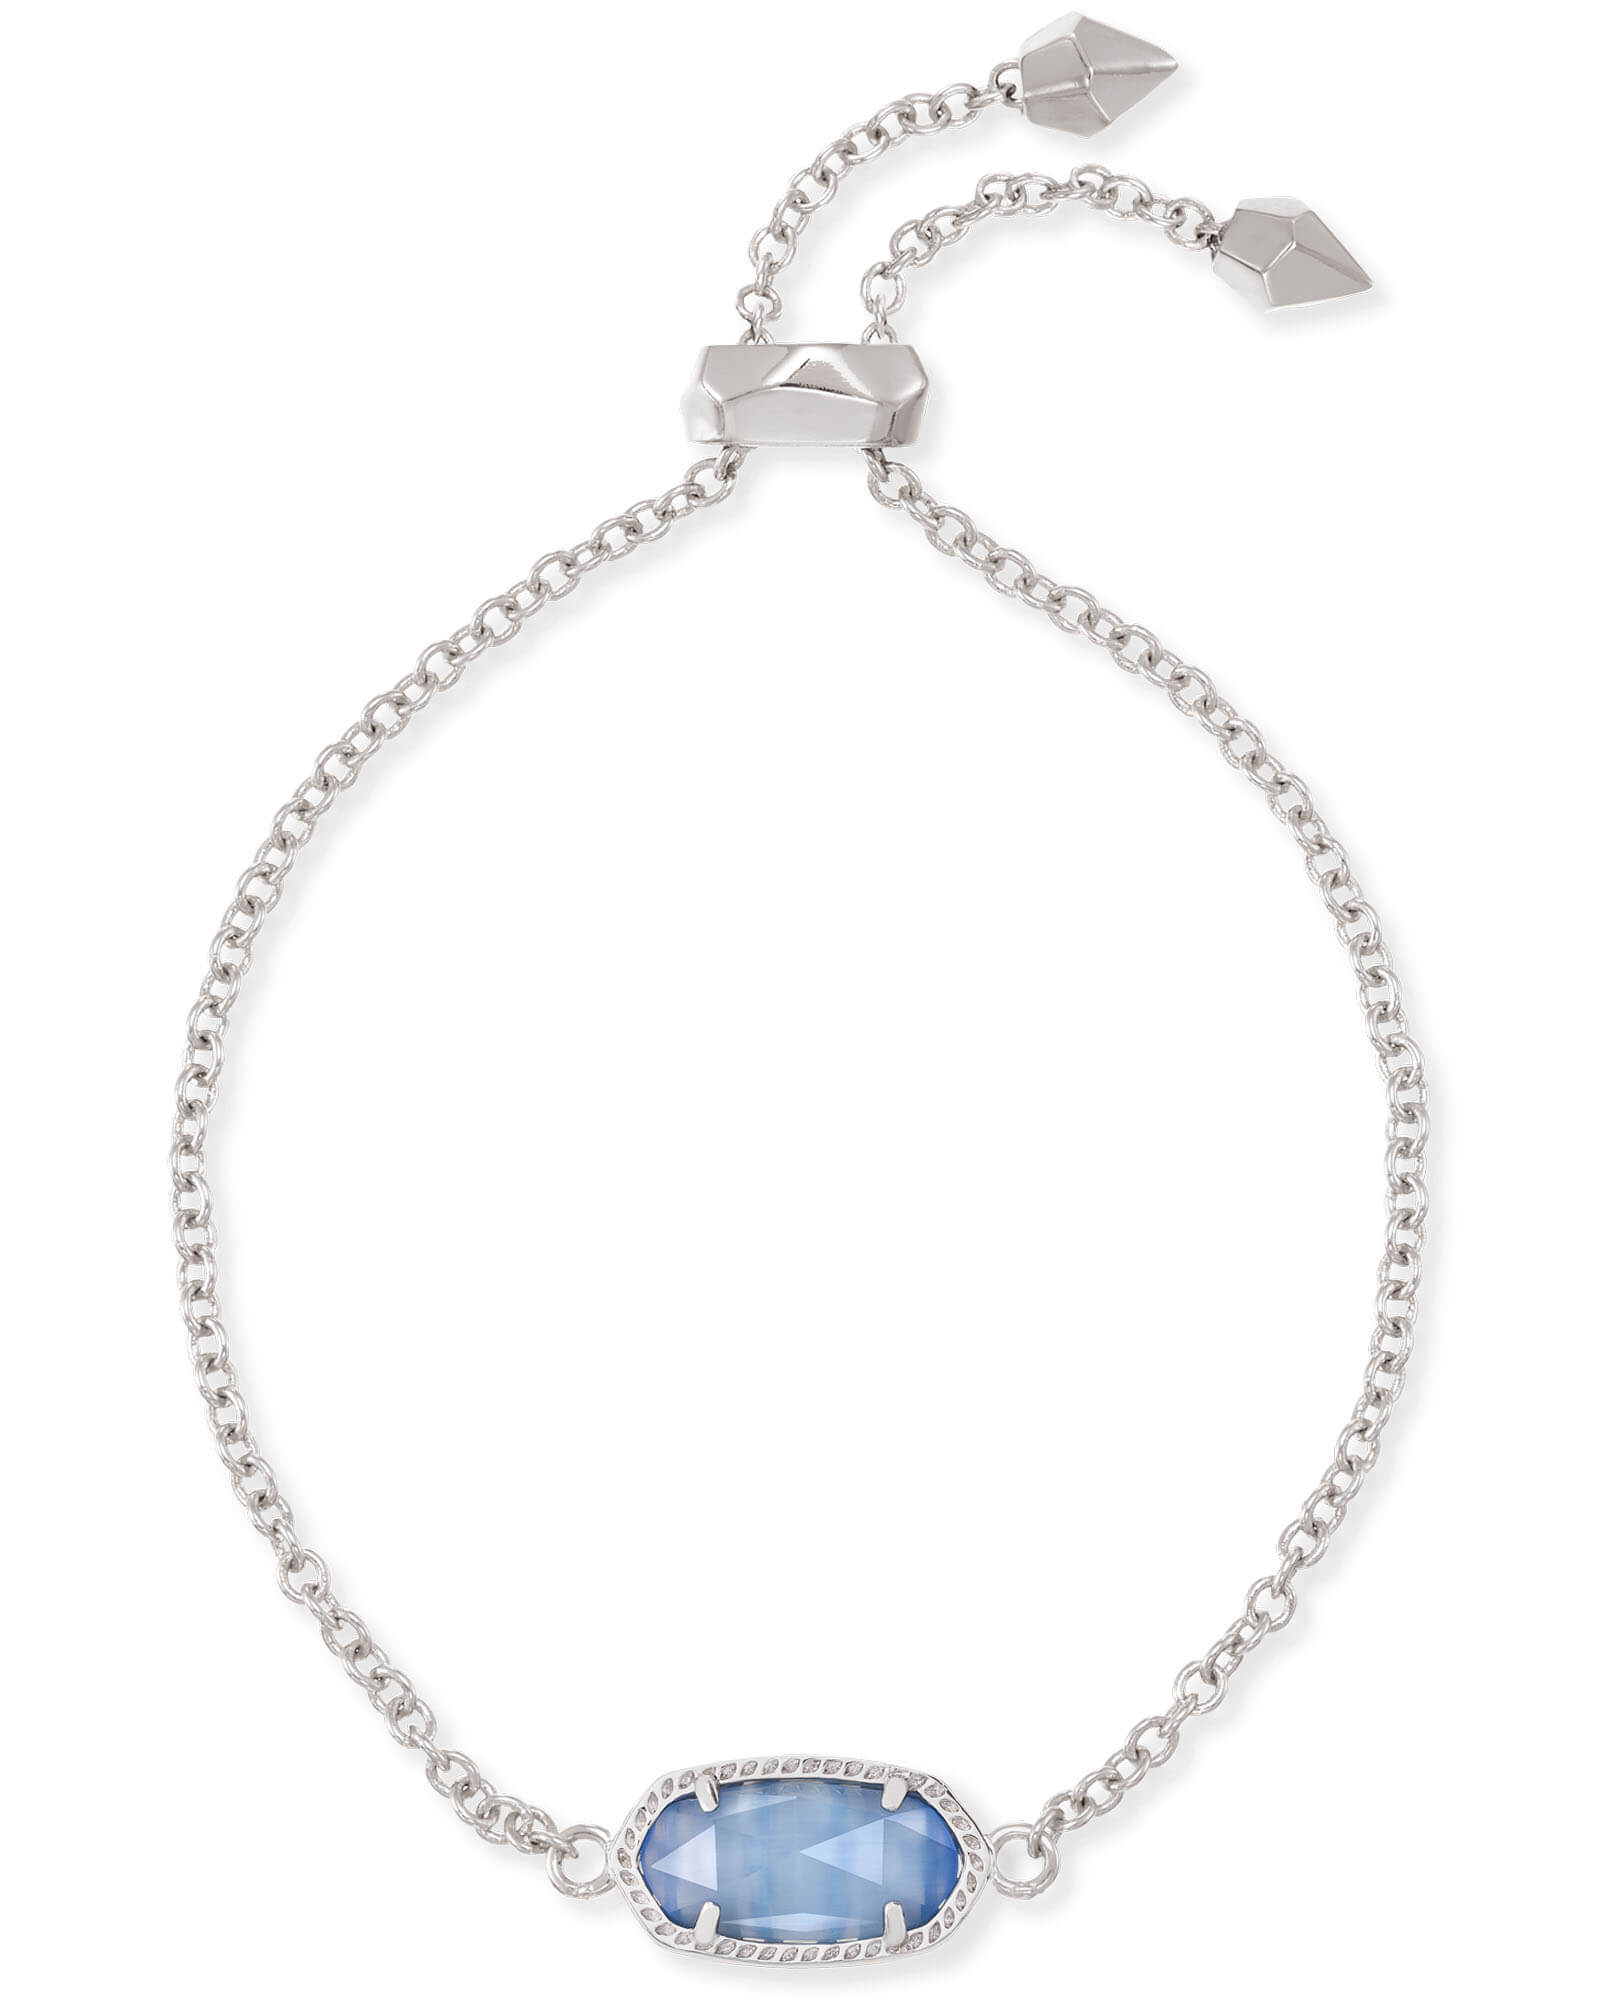 Elaina Silver Adjustable Chain Bracelet in Periwinkle Cats Eye